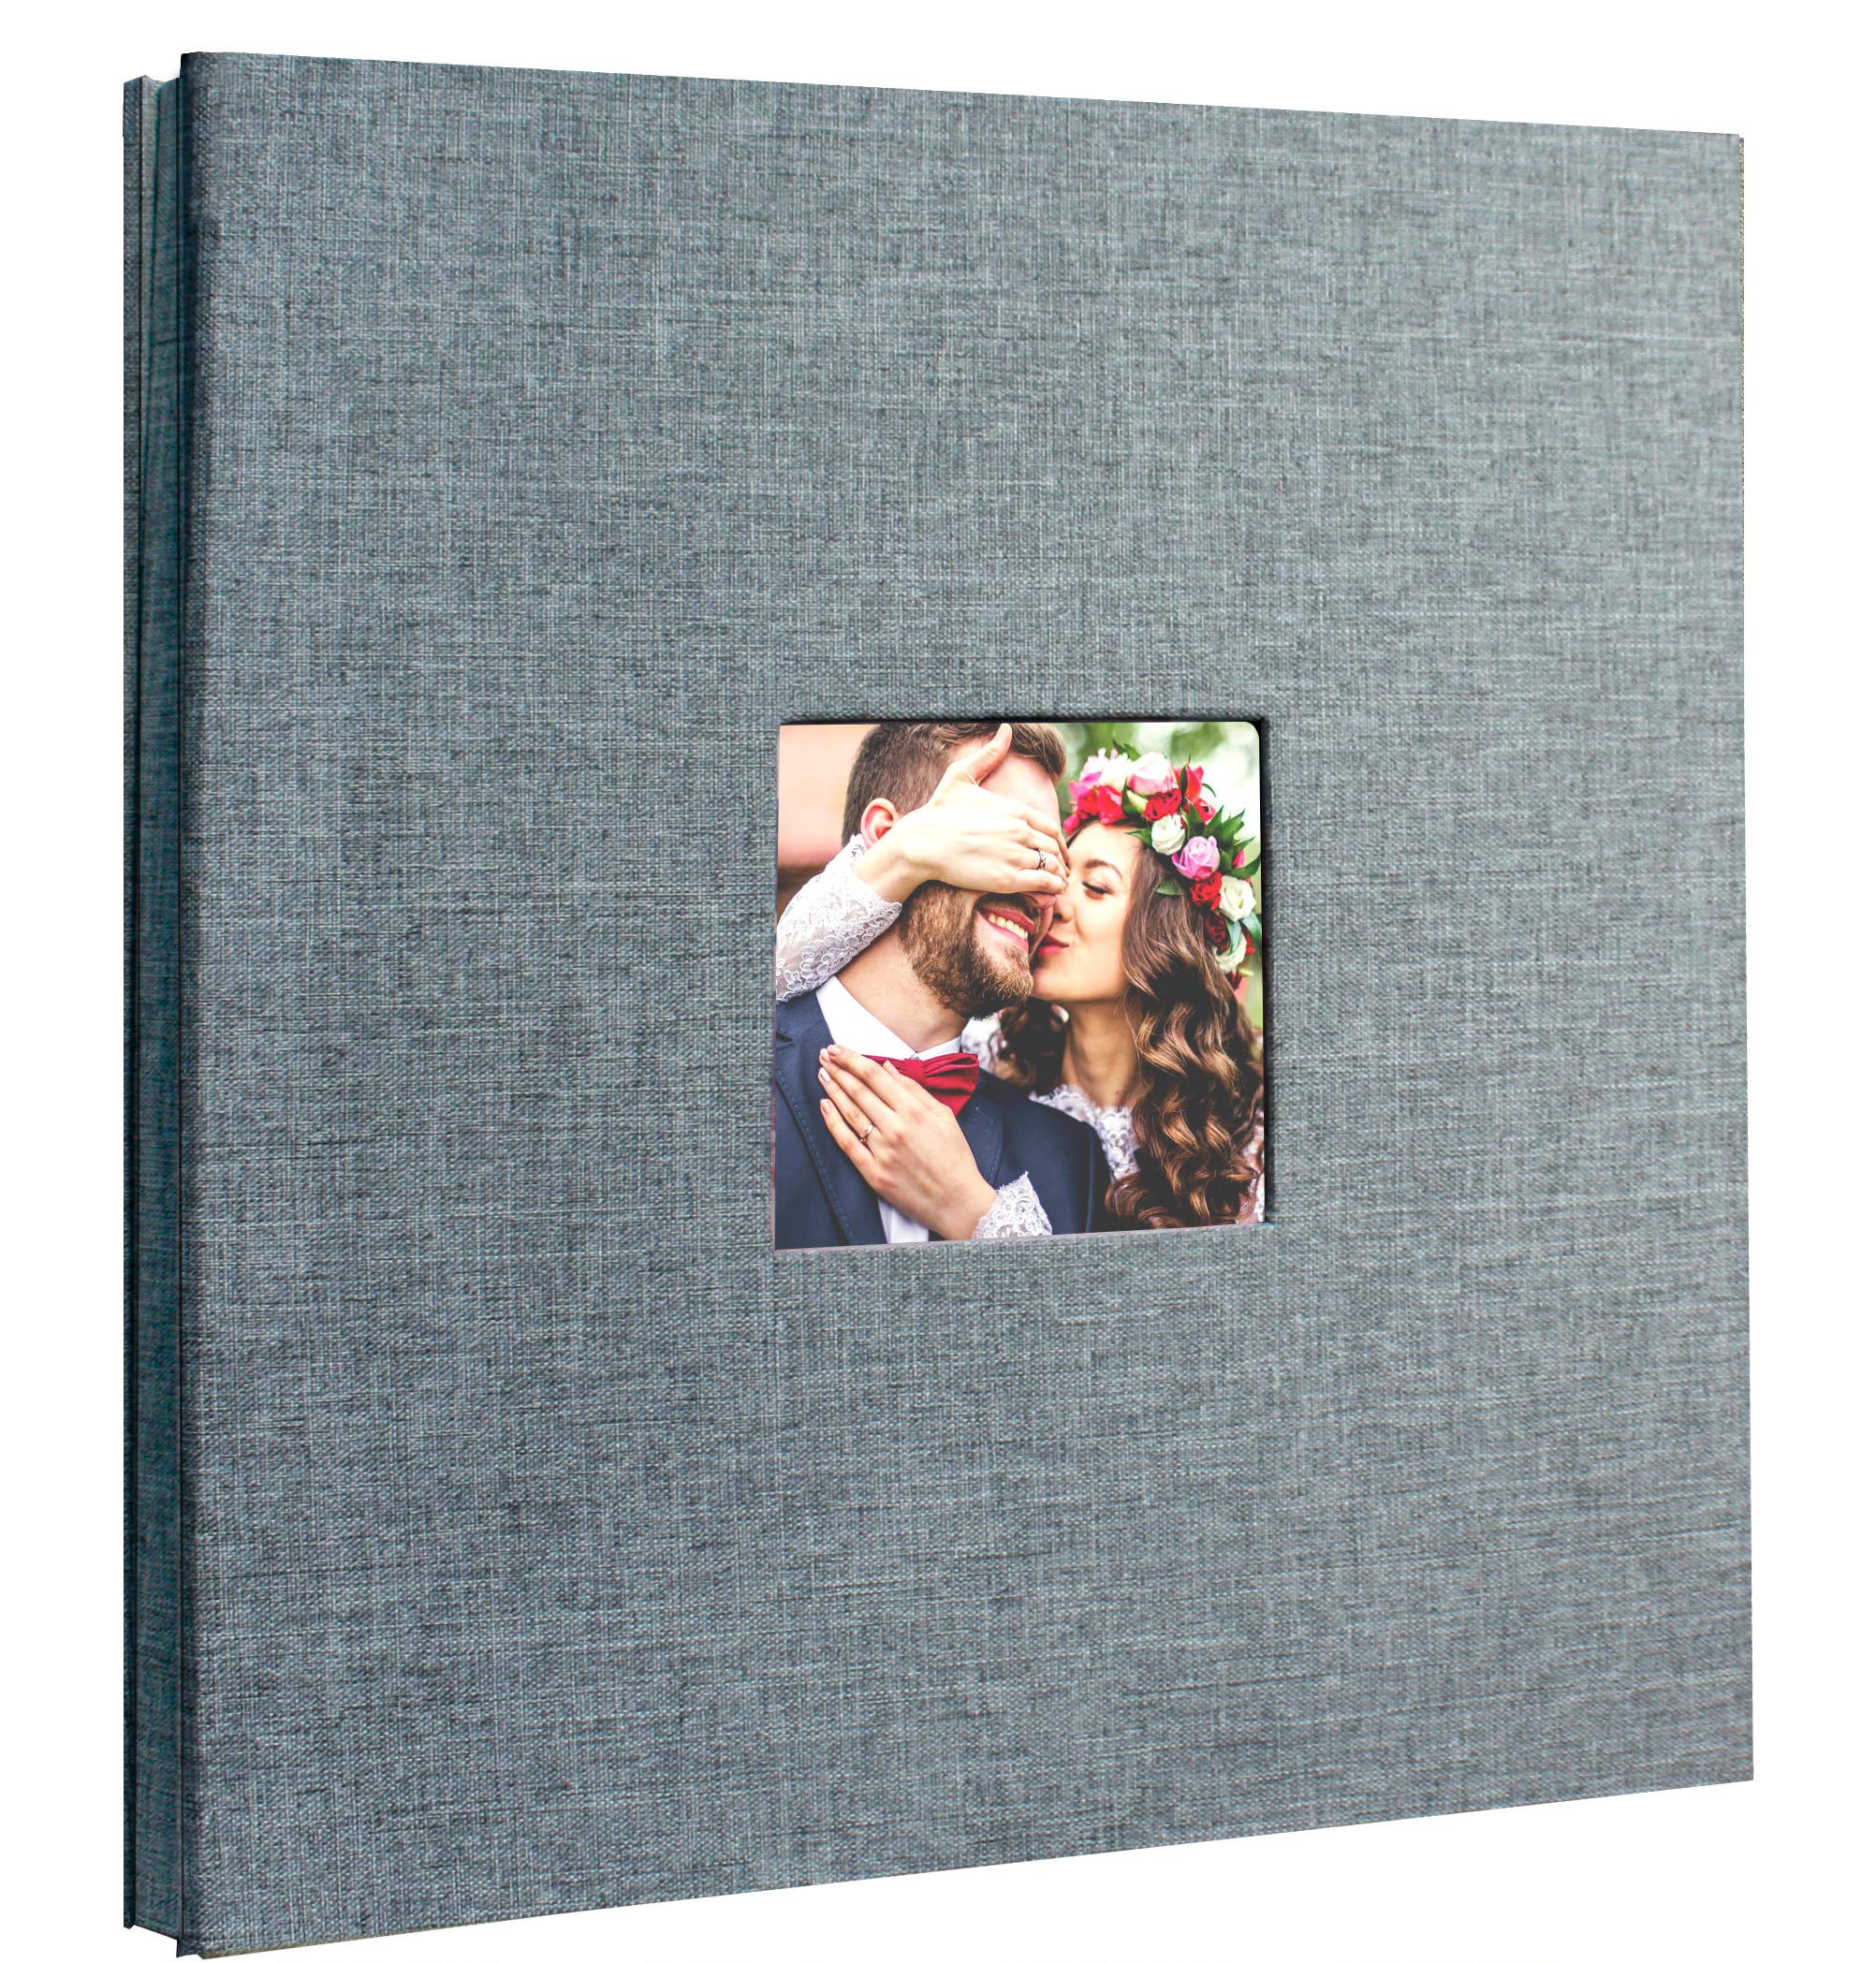 Beautyus Self Adhesive Stick Photo Album Magnetic Scrapbook Diy Anniversary Memory Book For Baby Wedding Family Albums Holds 3x5 4x6 5x7 6x8 8x10 Photos Gray M Buy Online In Aruba At Aruba Desertcart Com